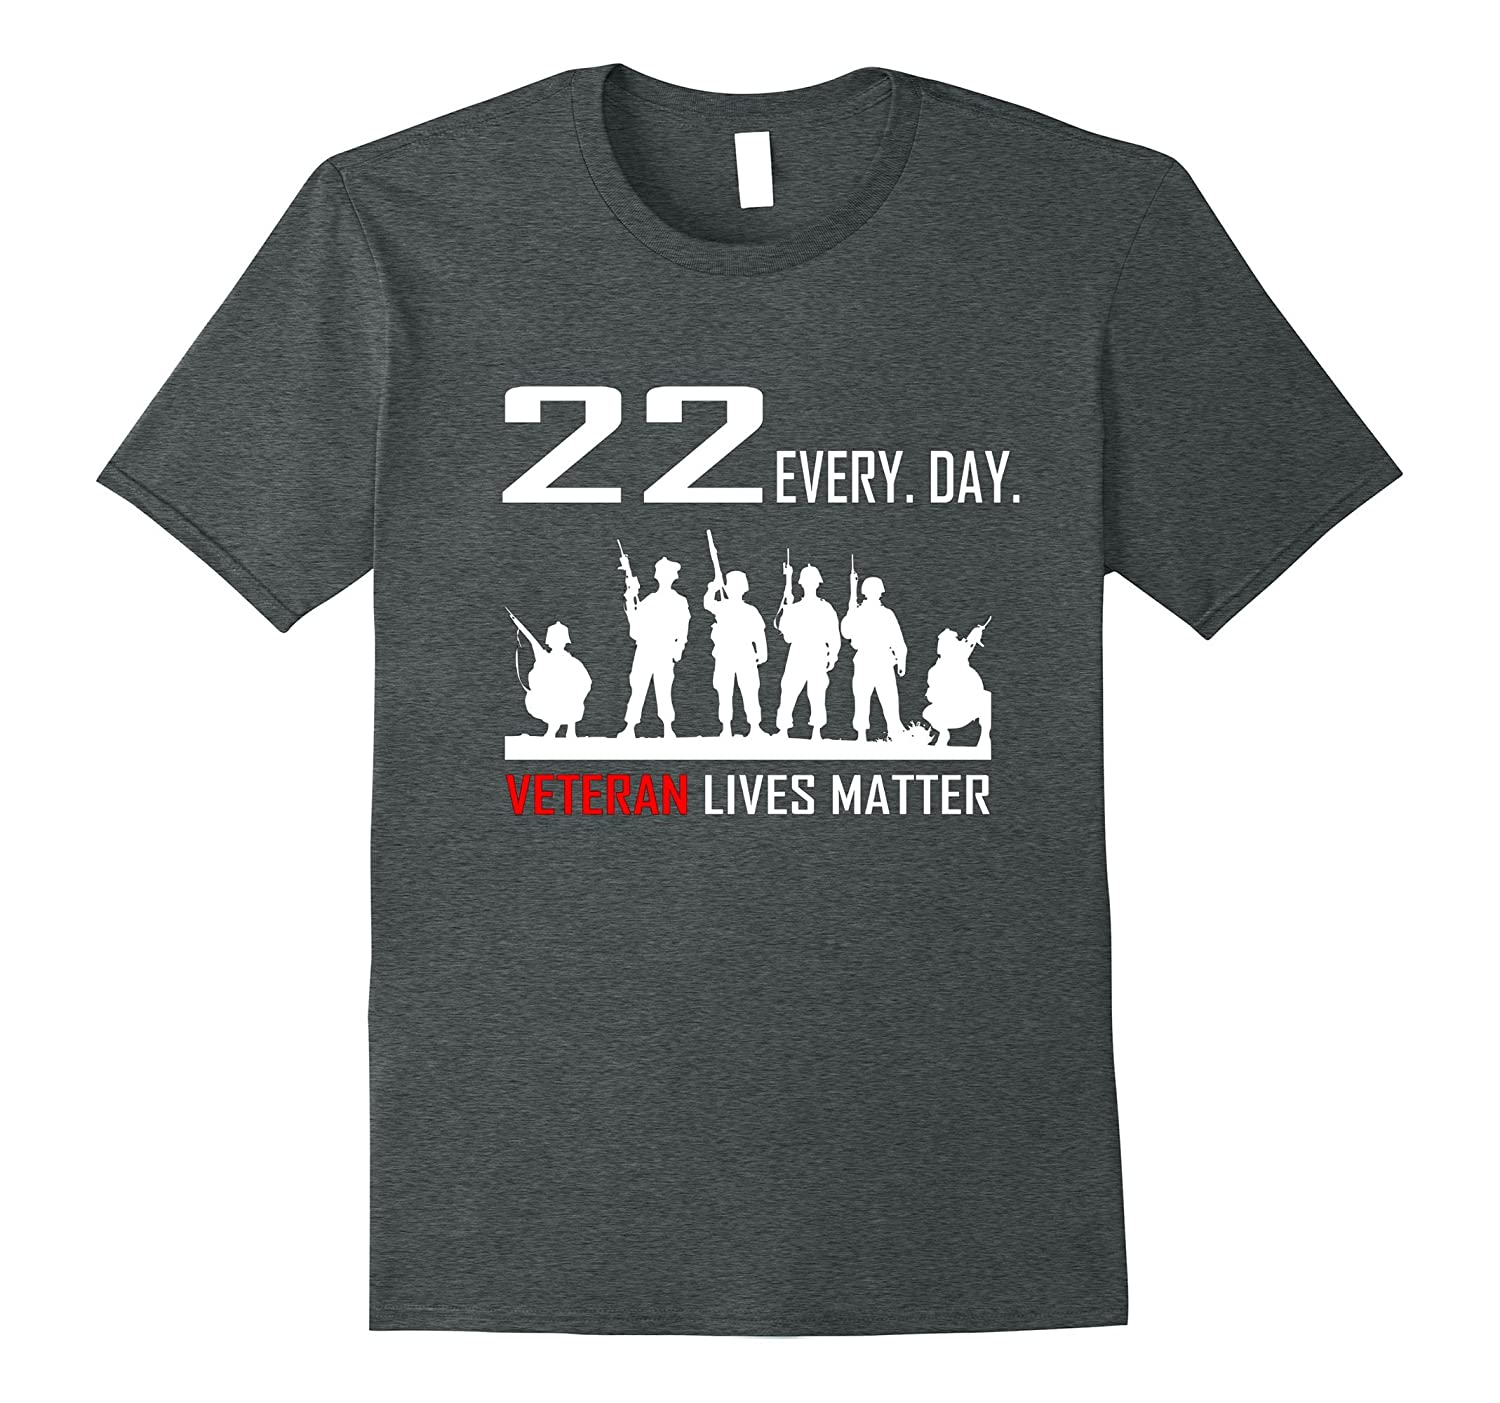 22 EVERY DAY Veteran Lives Matter Shirt